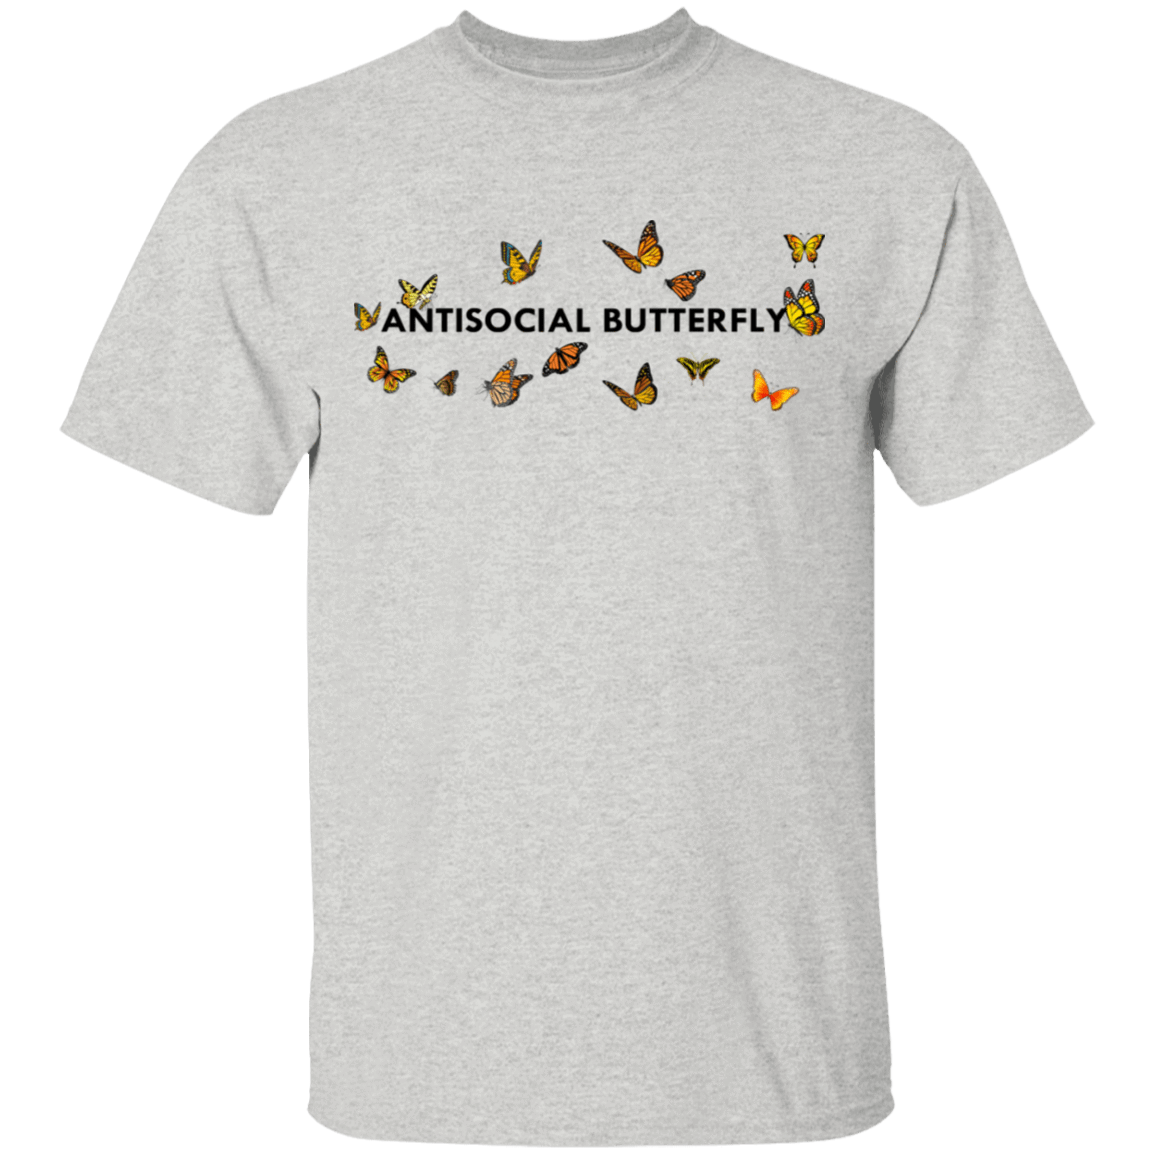 Antisocial Butterfly T-Shirts, Hoodies, Tank 22-2475-79240886-12568 - Tee Ript